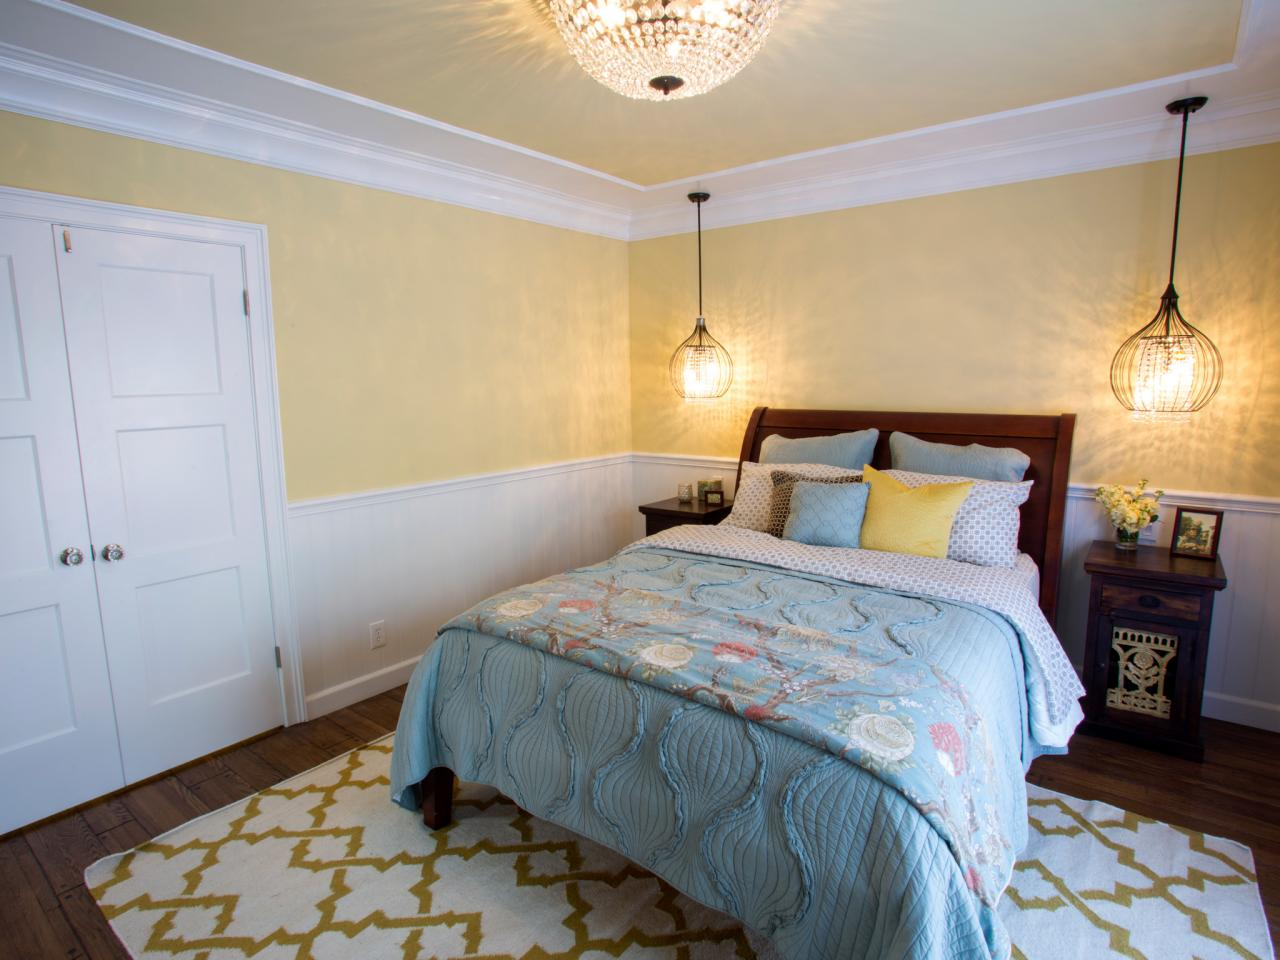 House hunters renovation hgtv Master bedroom with yellow walls